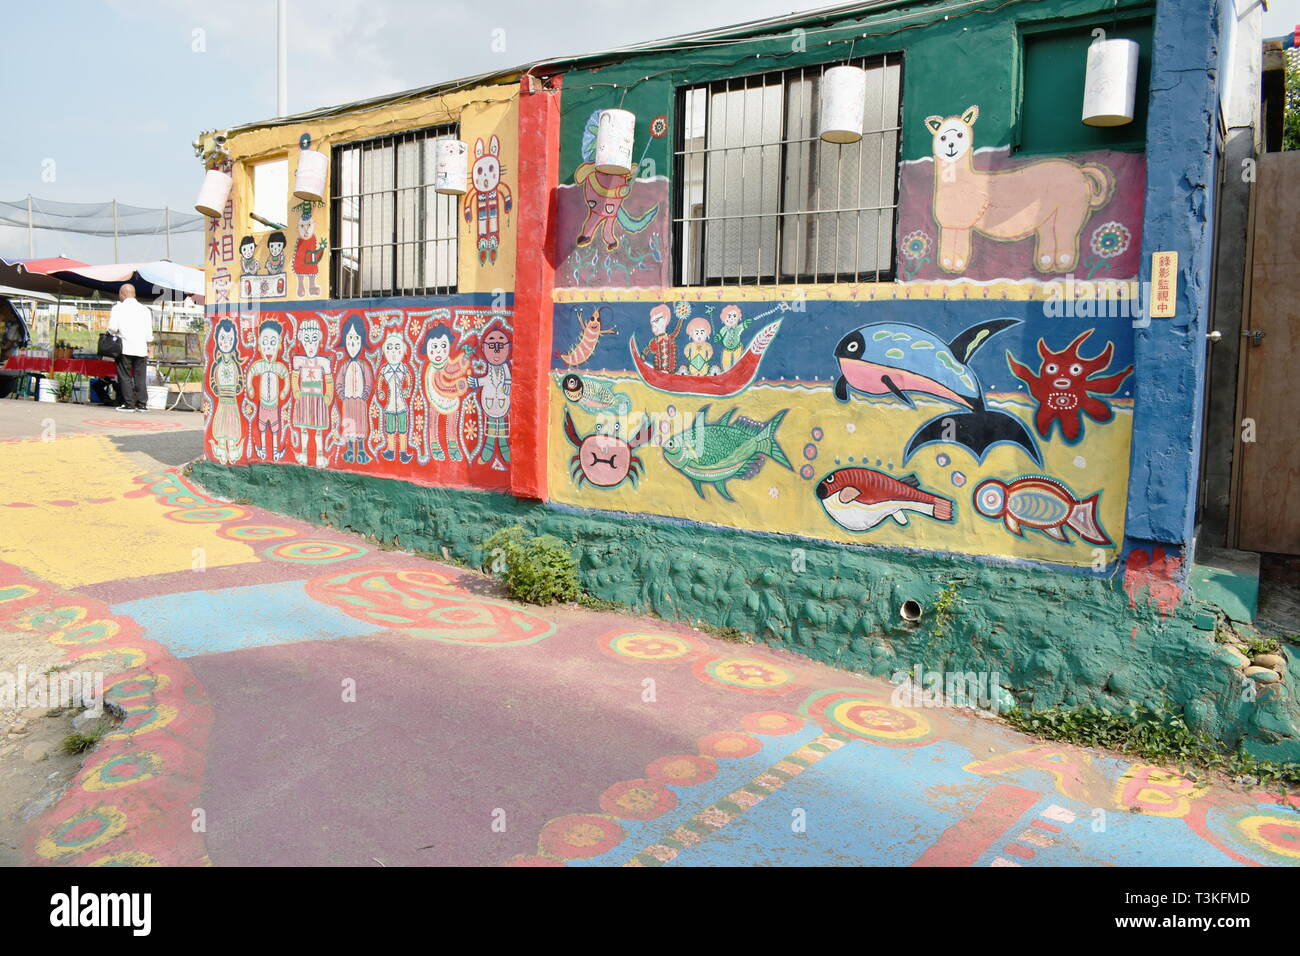 Taichung Taiwan March 29, 2019 : Caihongjuan or rainbow village old house of Taiwanese veteran renovation by painting and revive to new destinatin lan - Stock Image